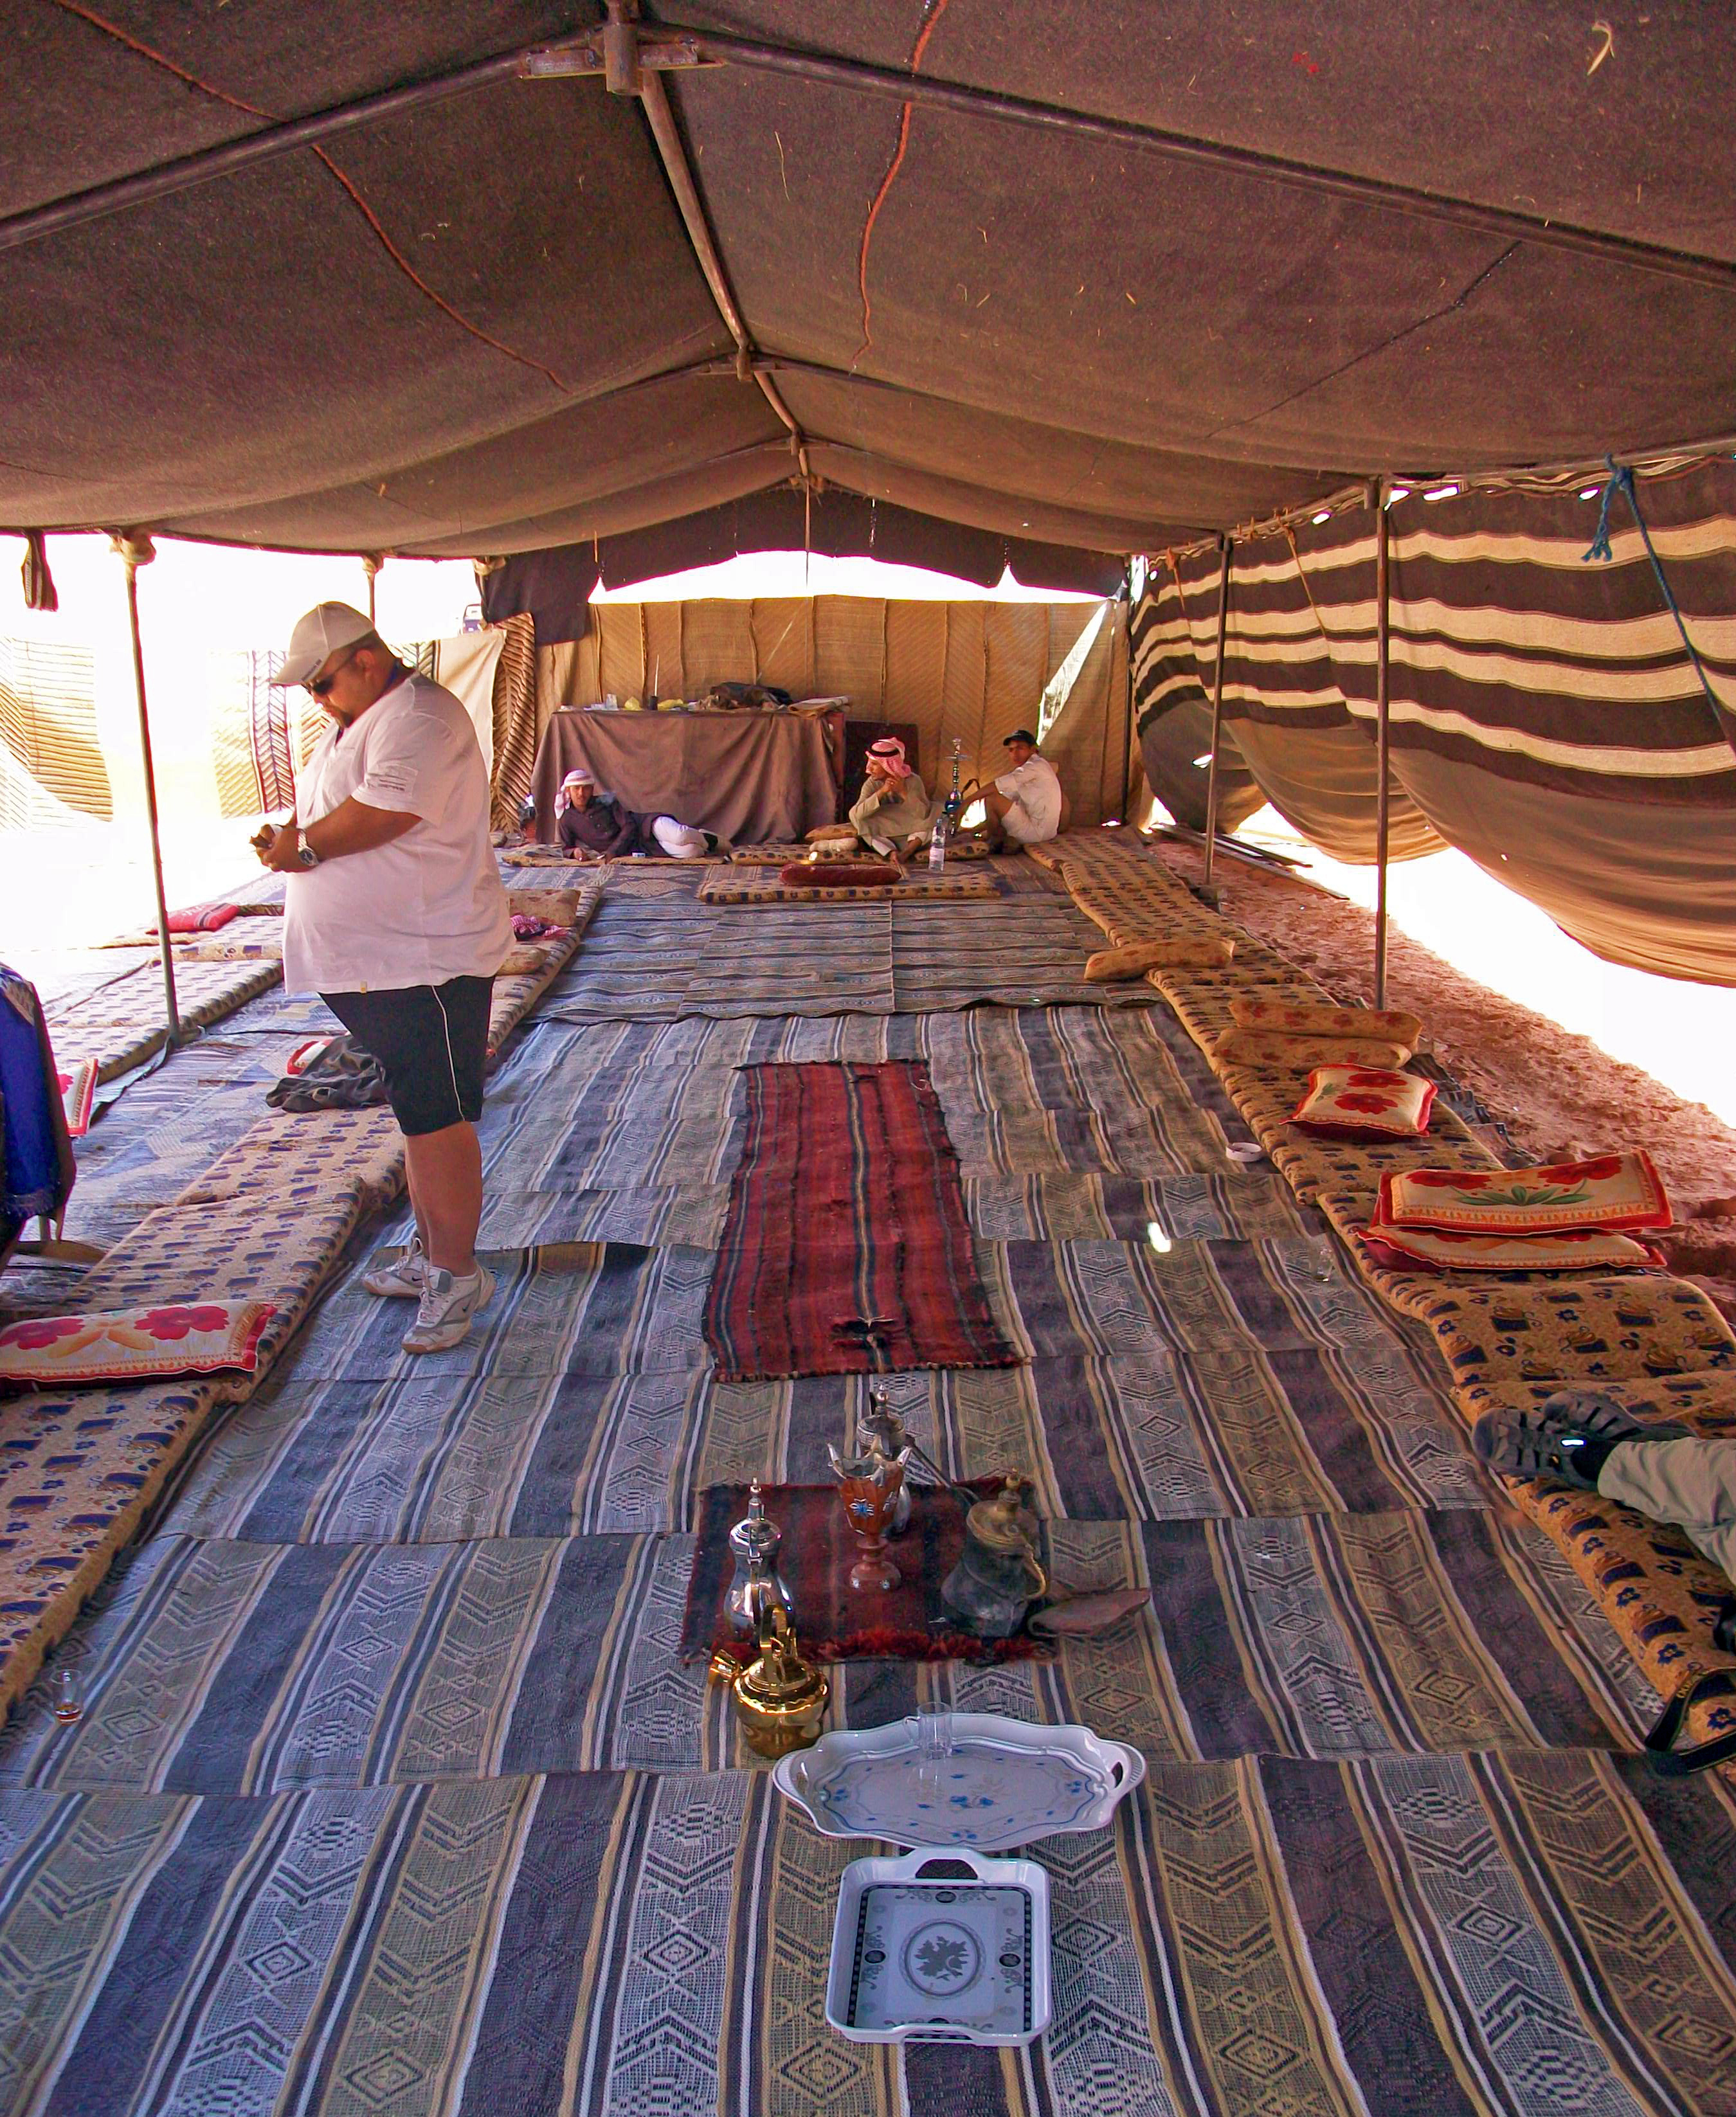 of a Bedouin Tent in Wadi